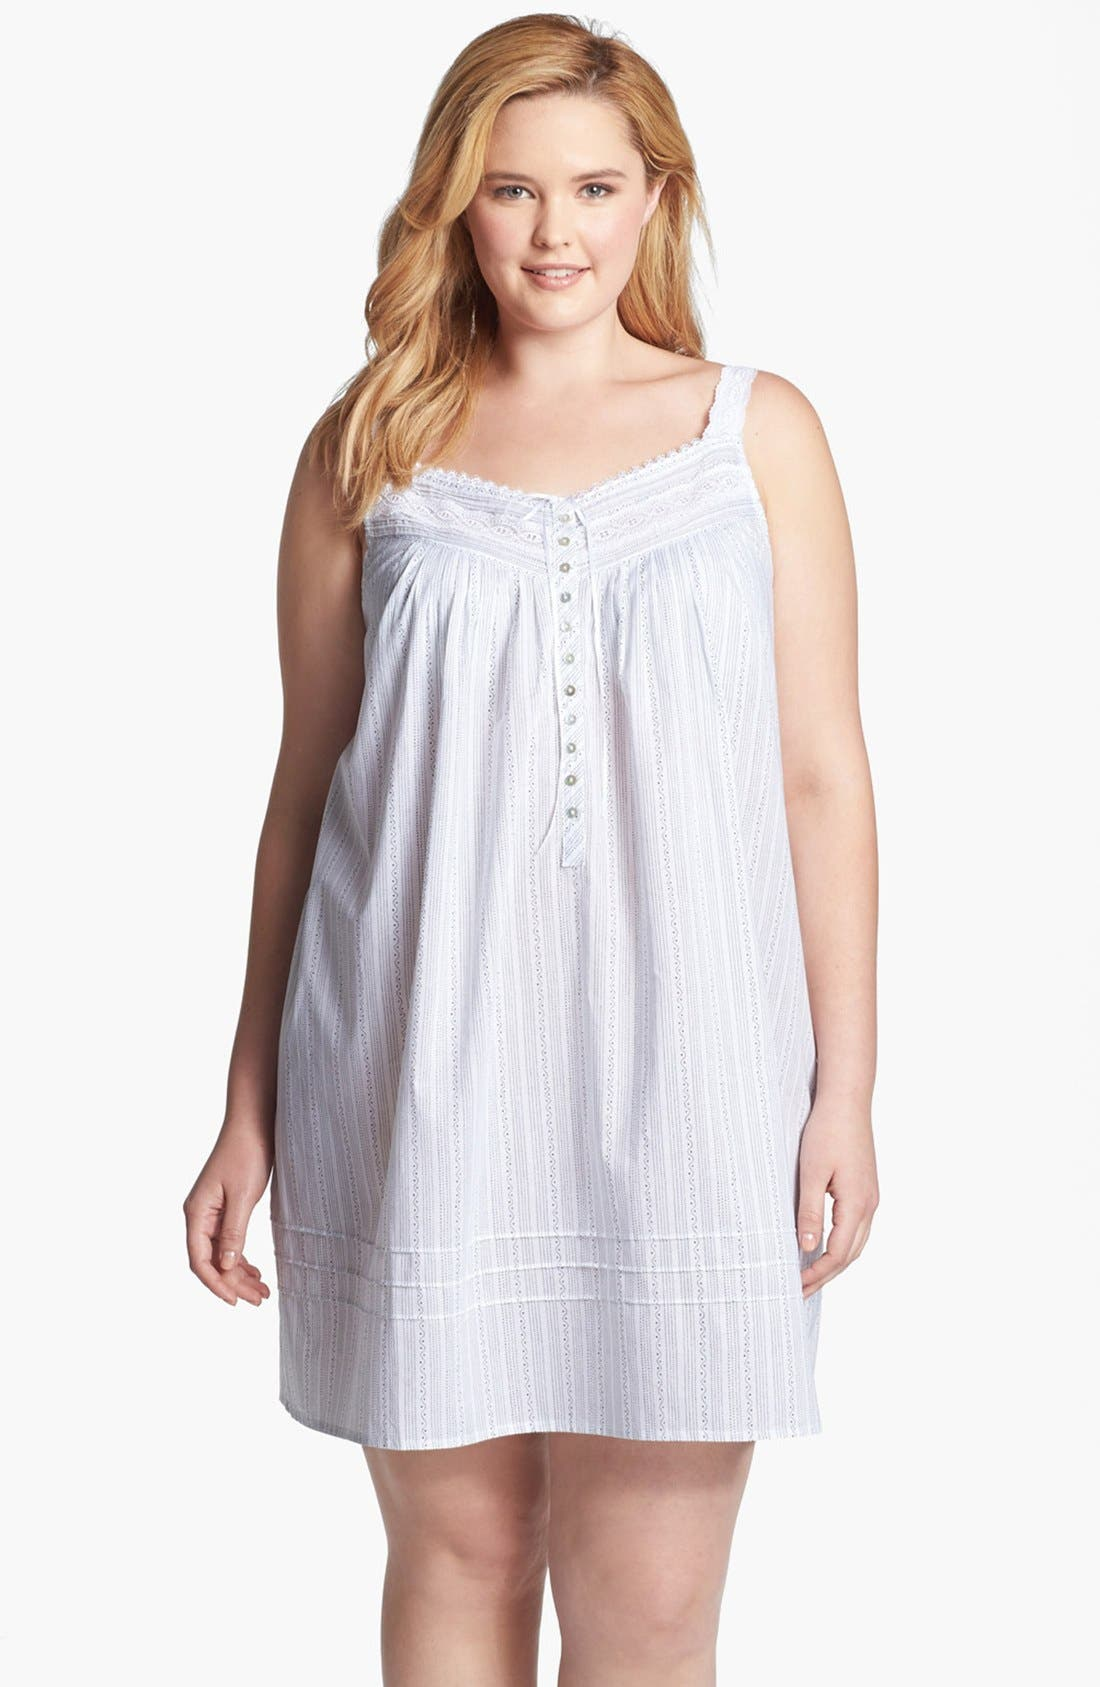 Alternate Image 1 Selected - Eileen West 'Moonlit Shores' Short Nightgown (Plus Size)